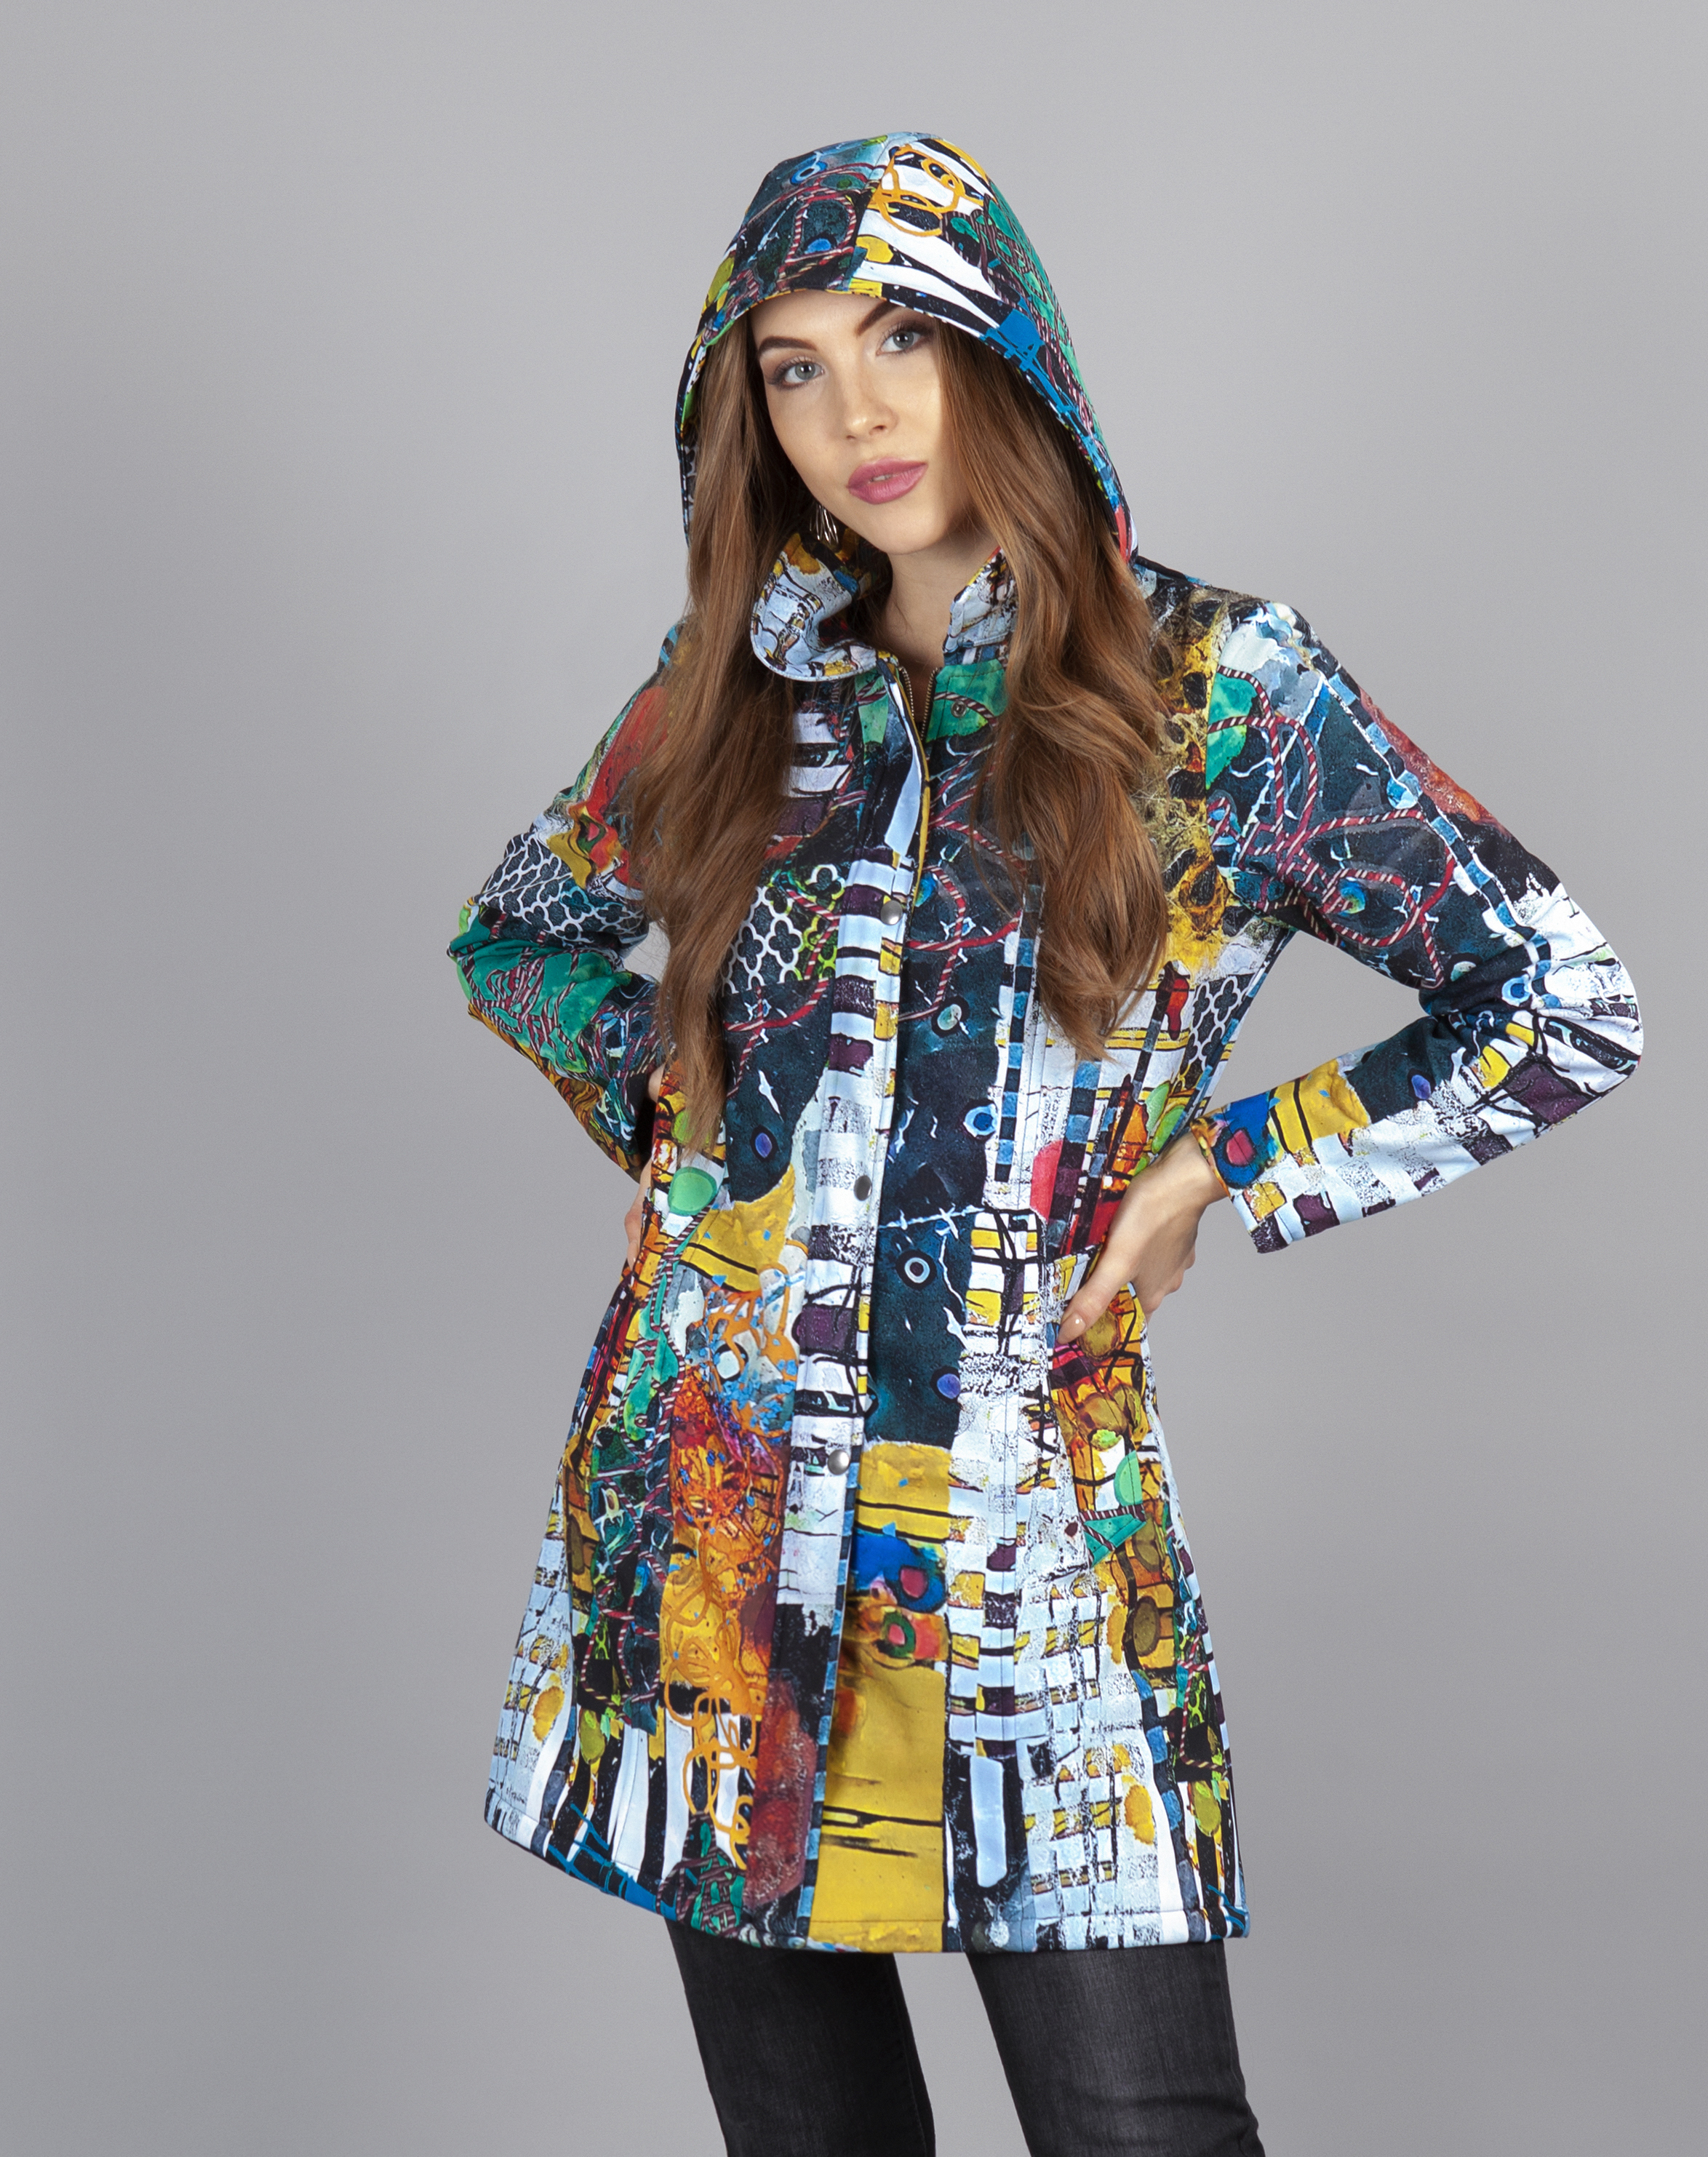 Simply Art Dolcezza: Colors Of Flight Aviary Abstract Art Soft Shell Coat (2 Left!) Dolcezza_Simplyart_70883